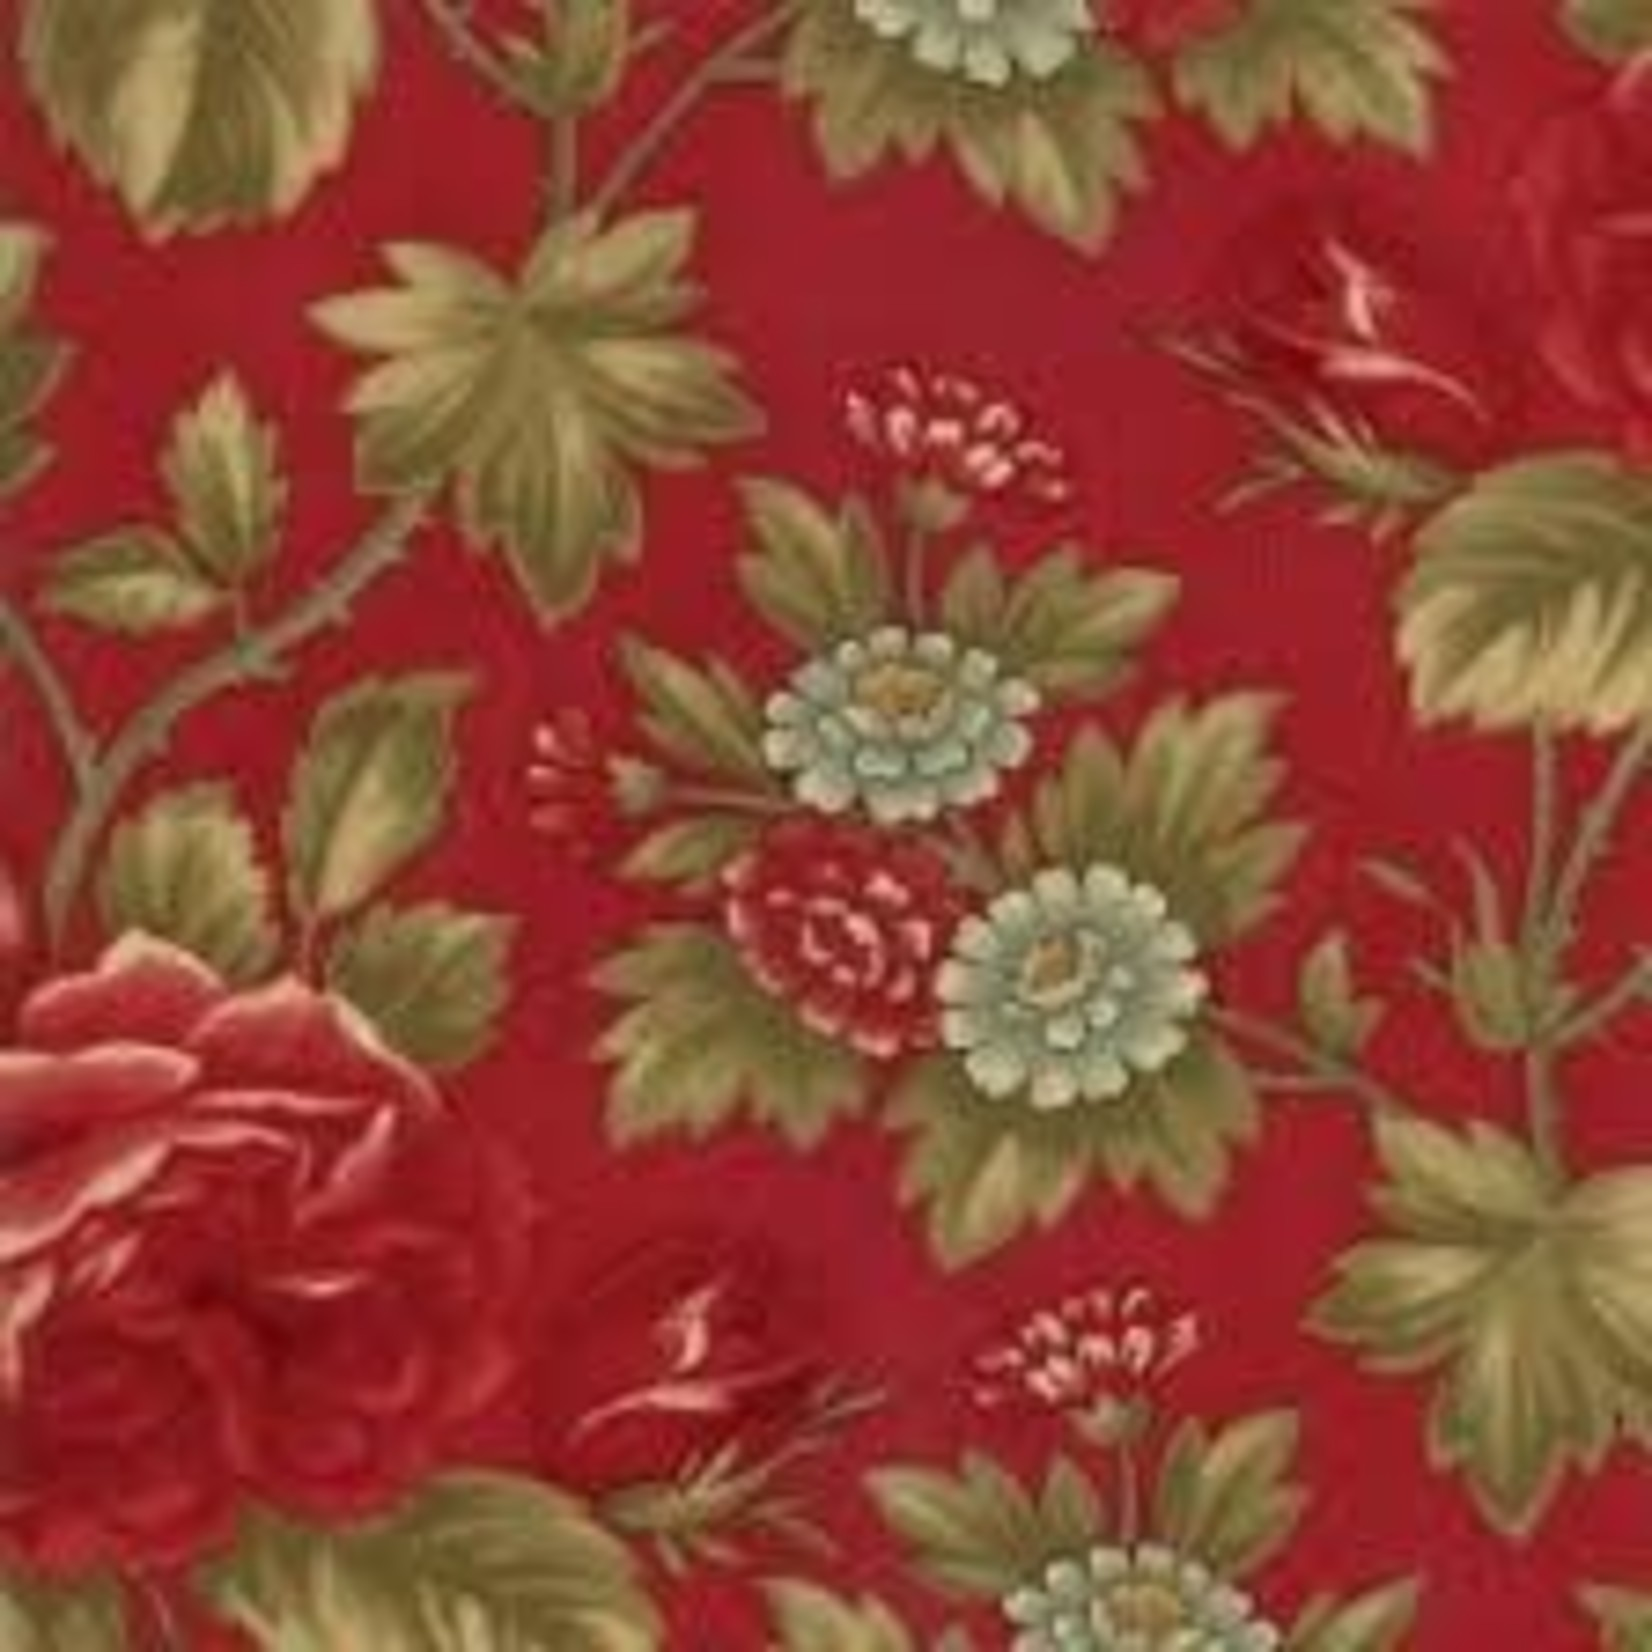 Moda Fabrics 3 Sisters - Rosewood - Floral Roses - Cherry